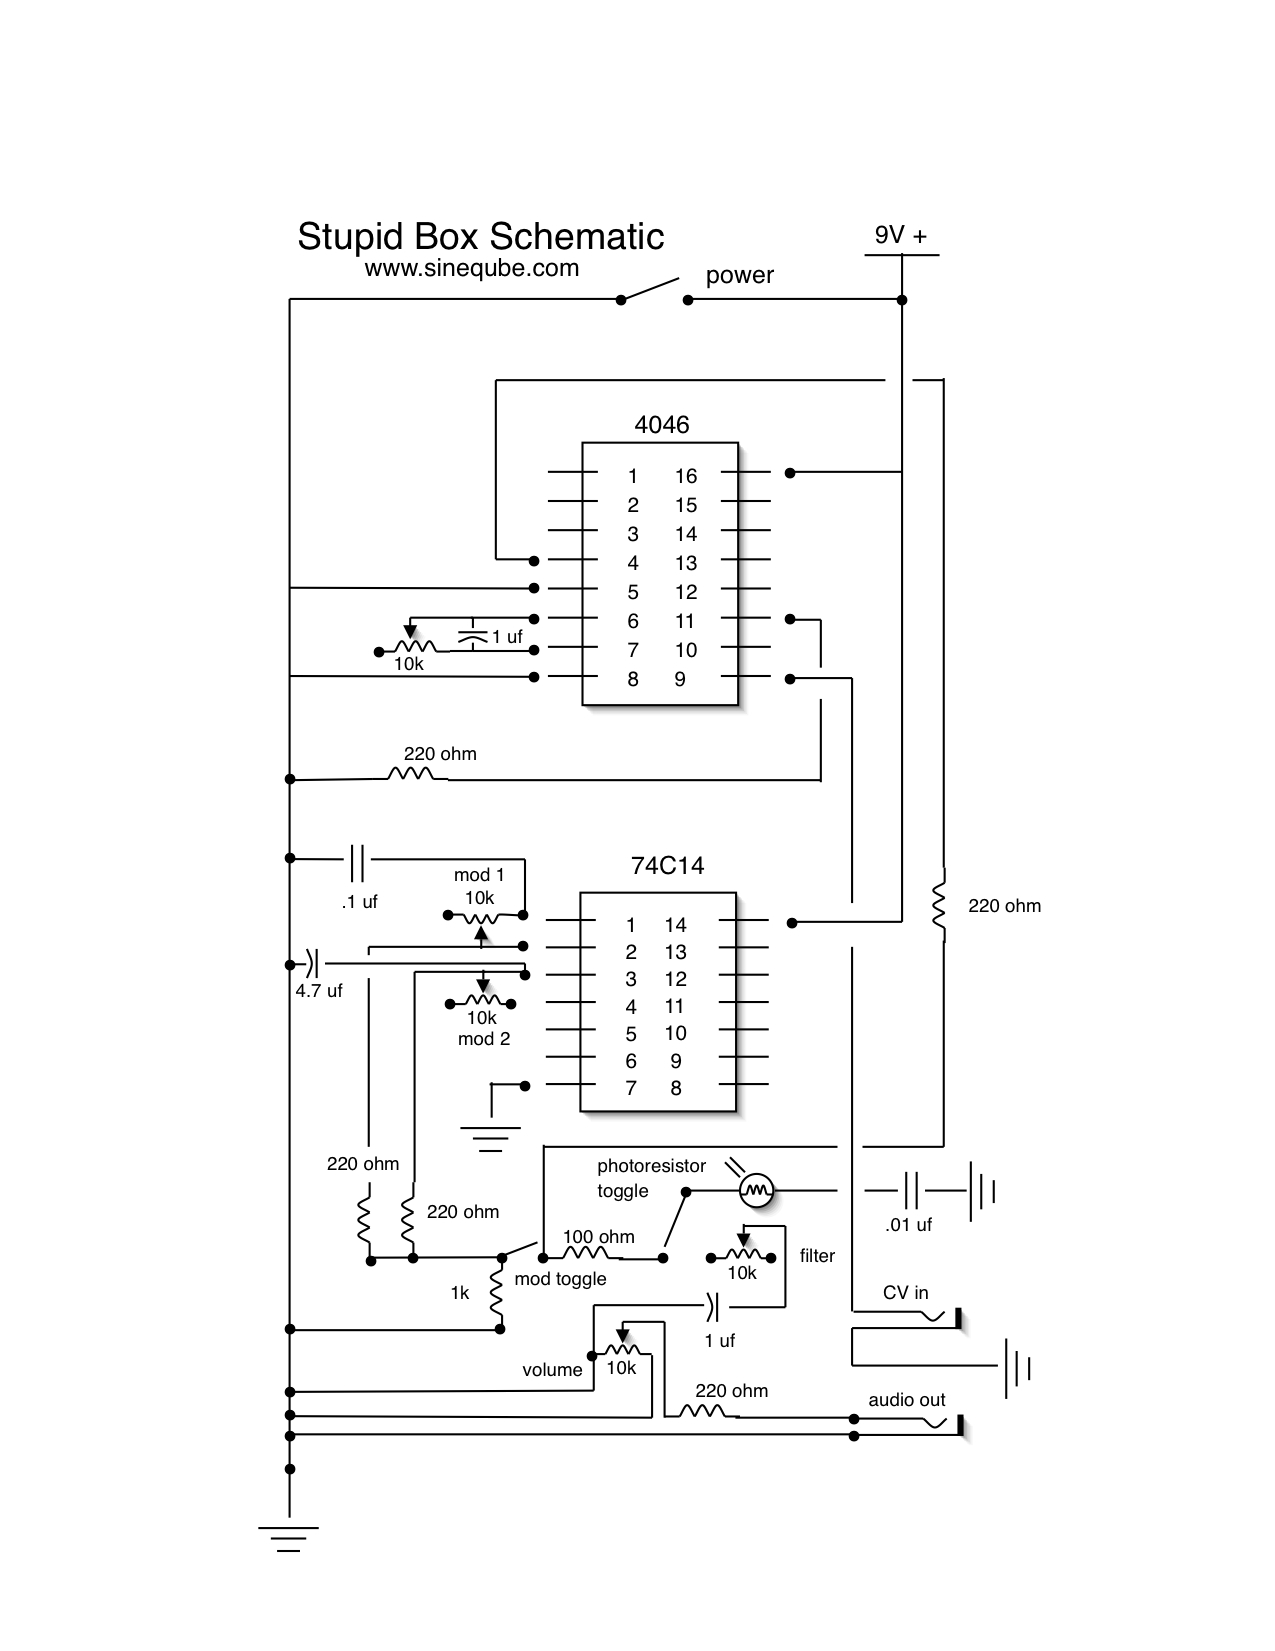 Updated Stupid Box Schematic Sineqube